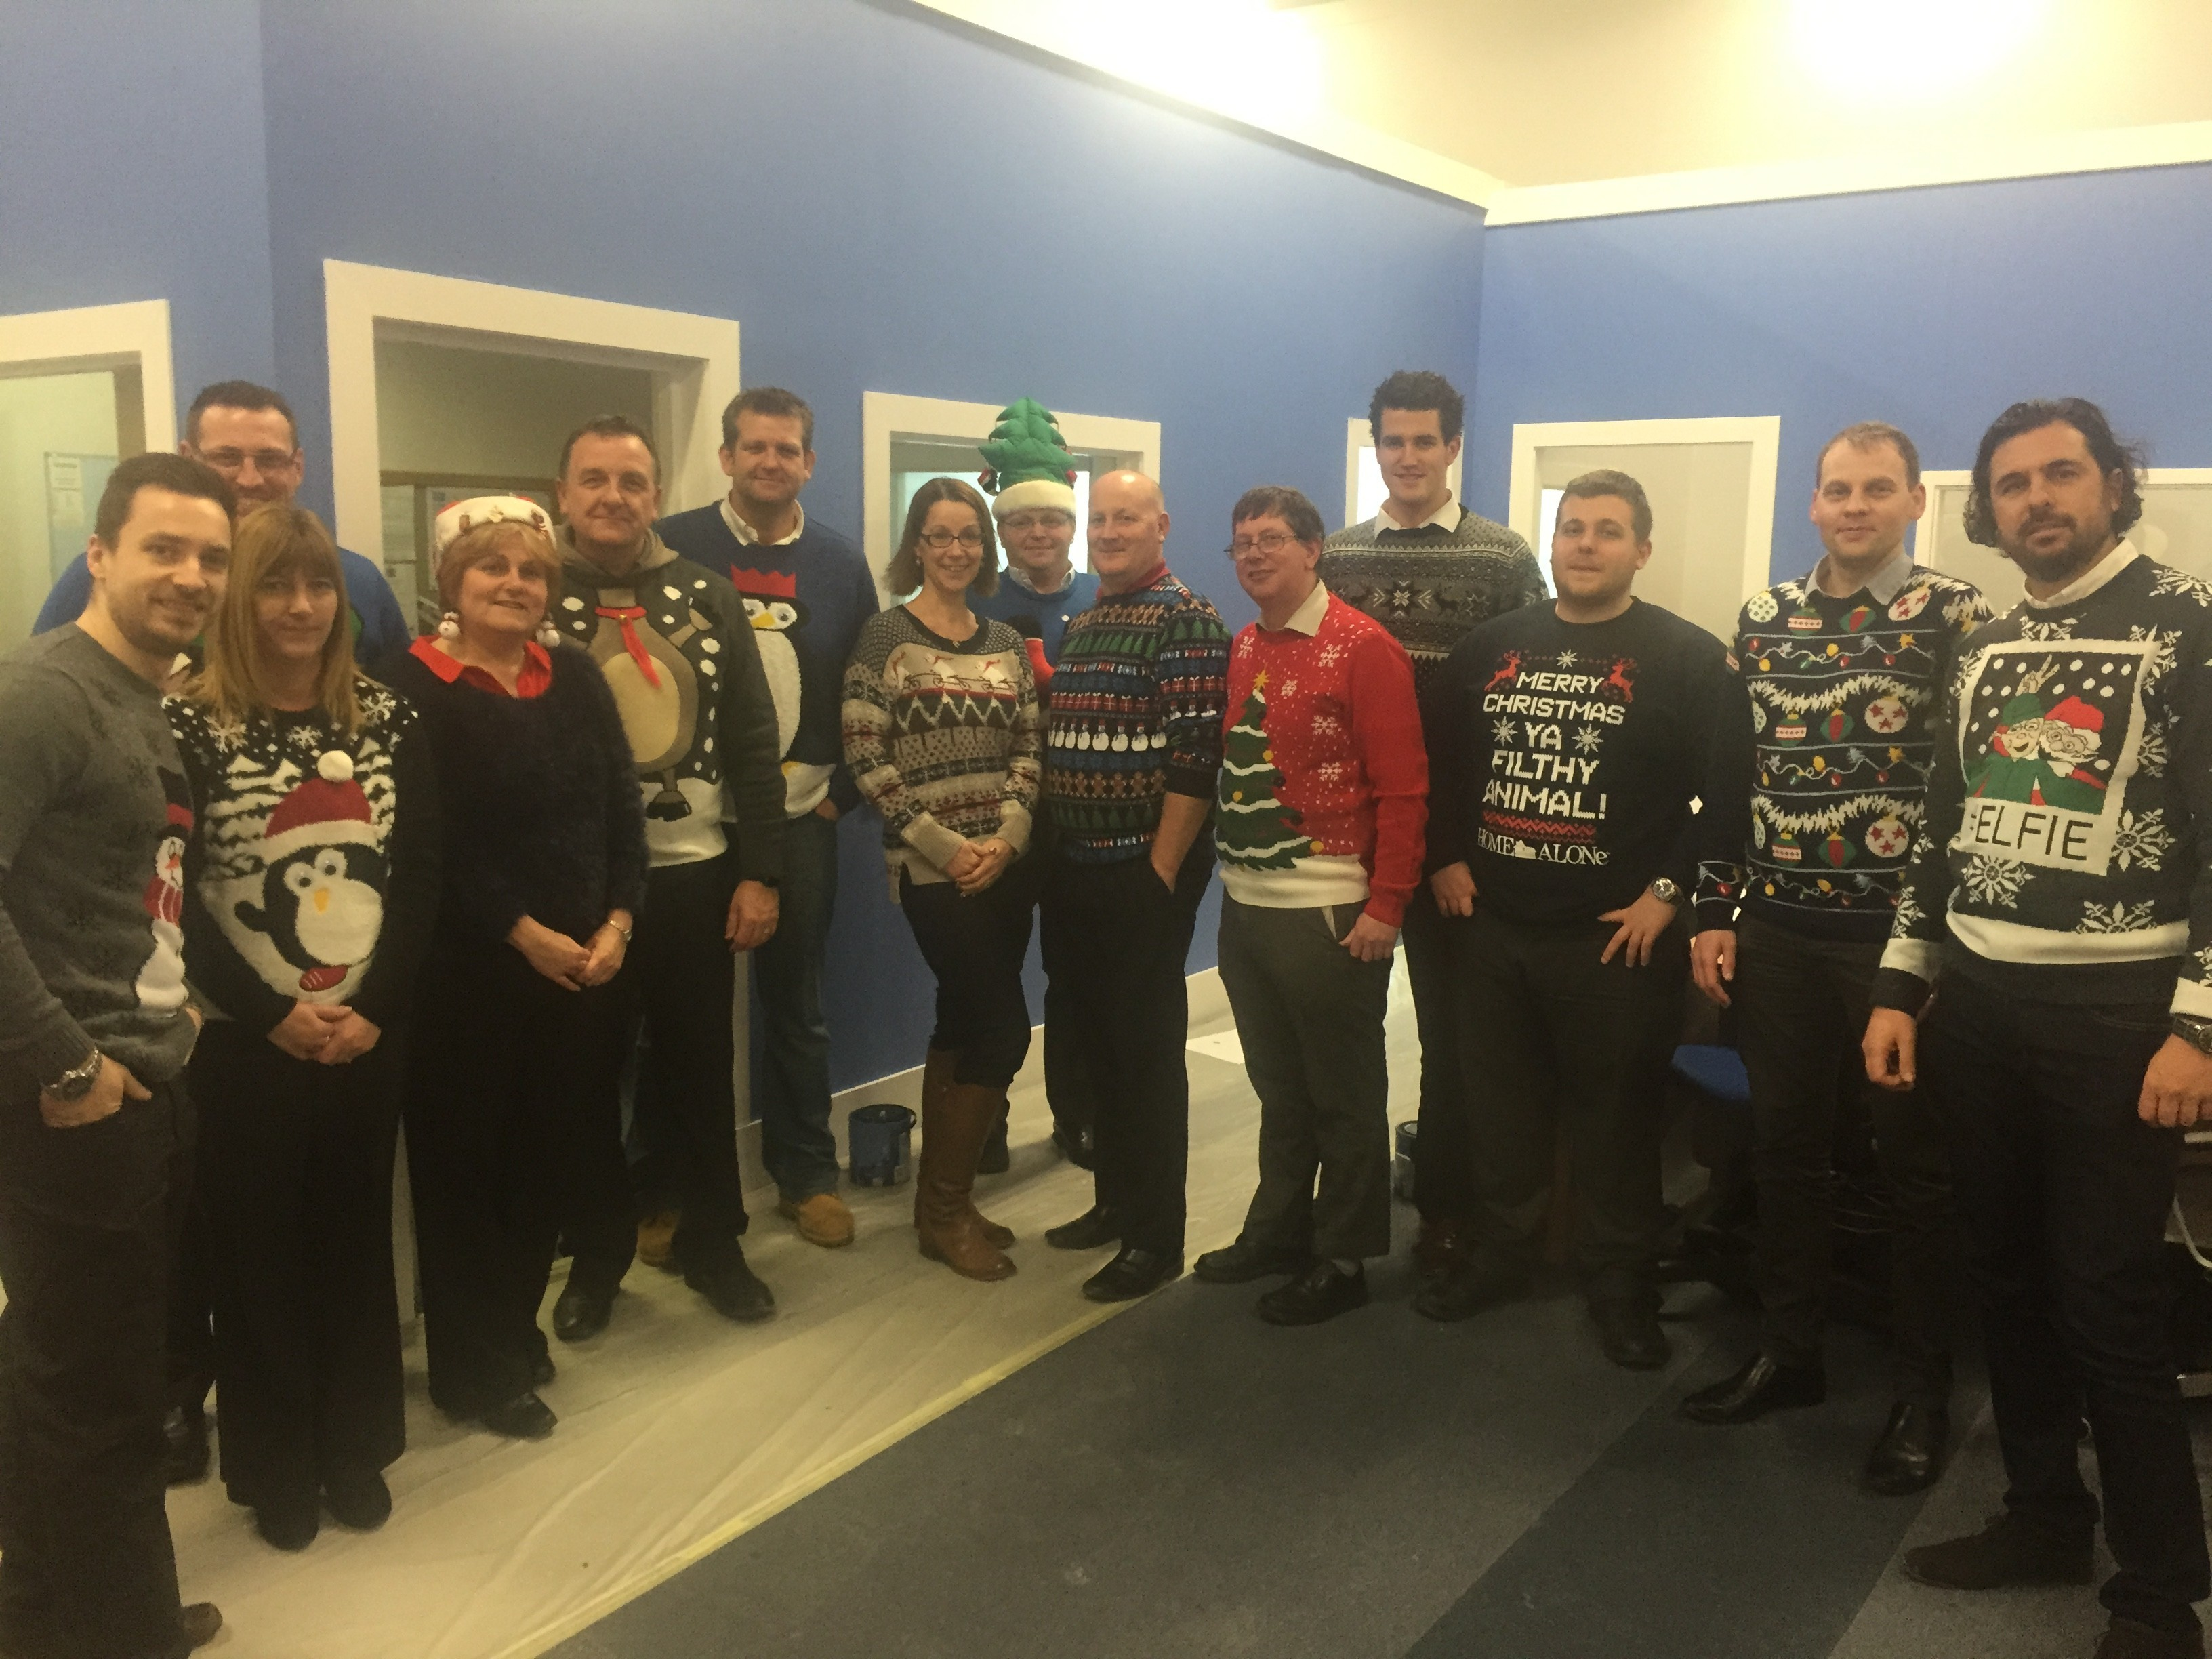 Winning Christmas Jumpers